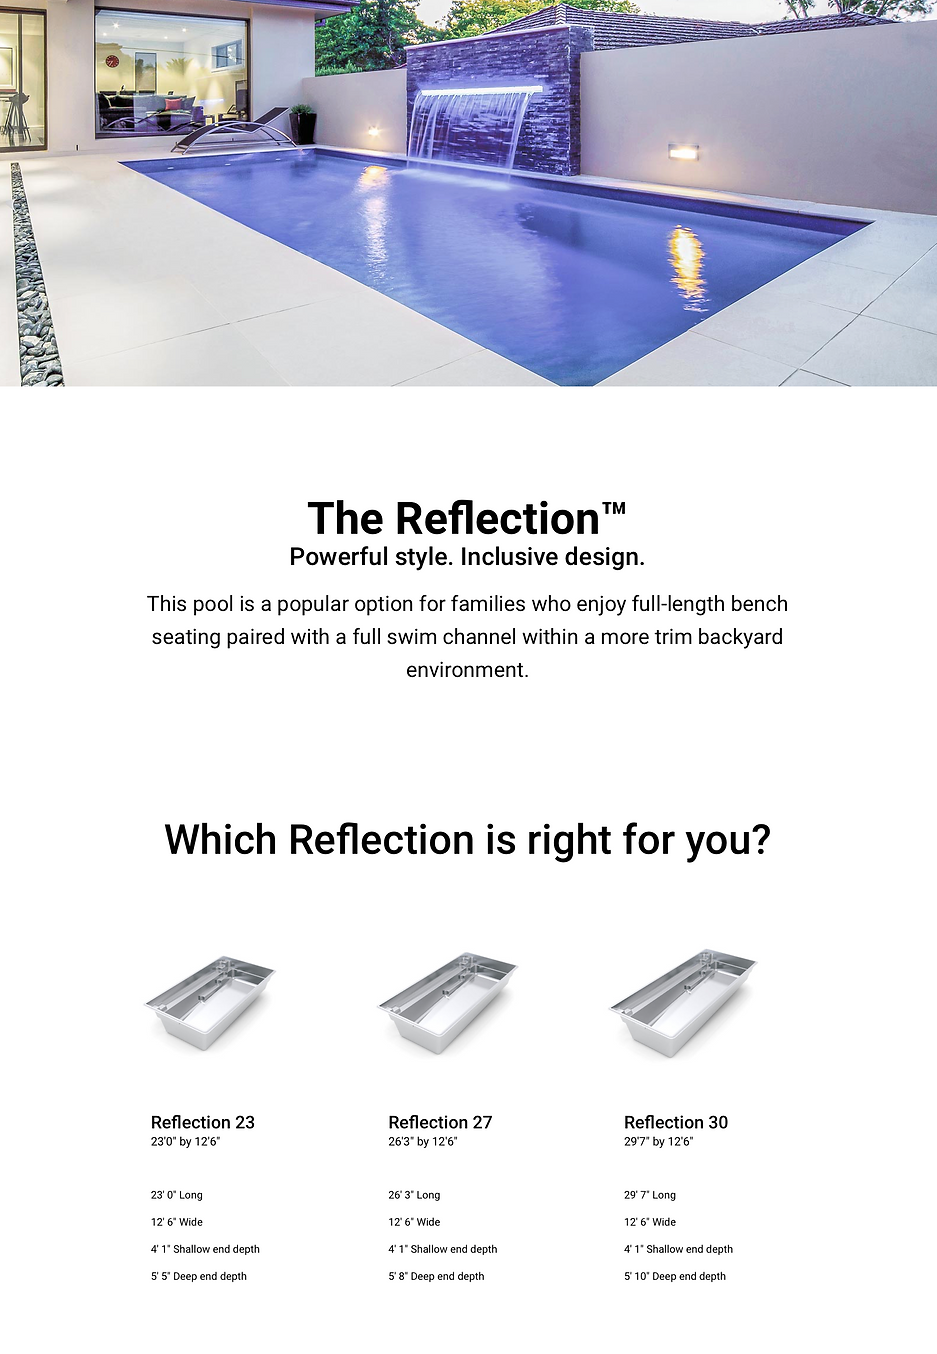 The Reflection Design.png